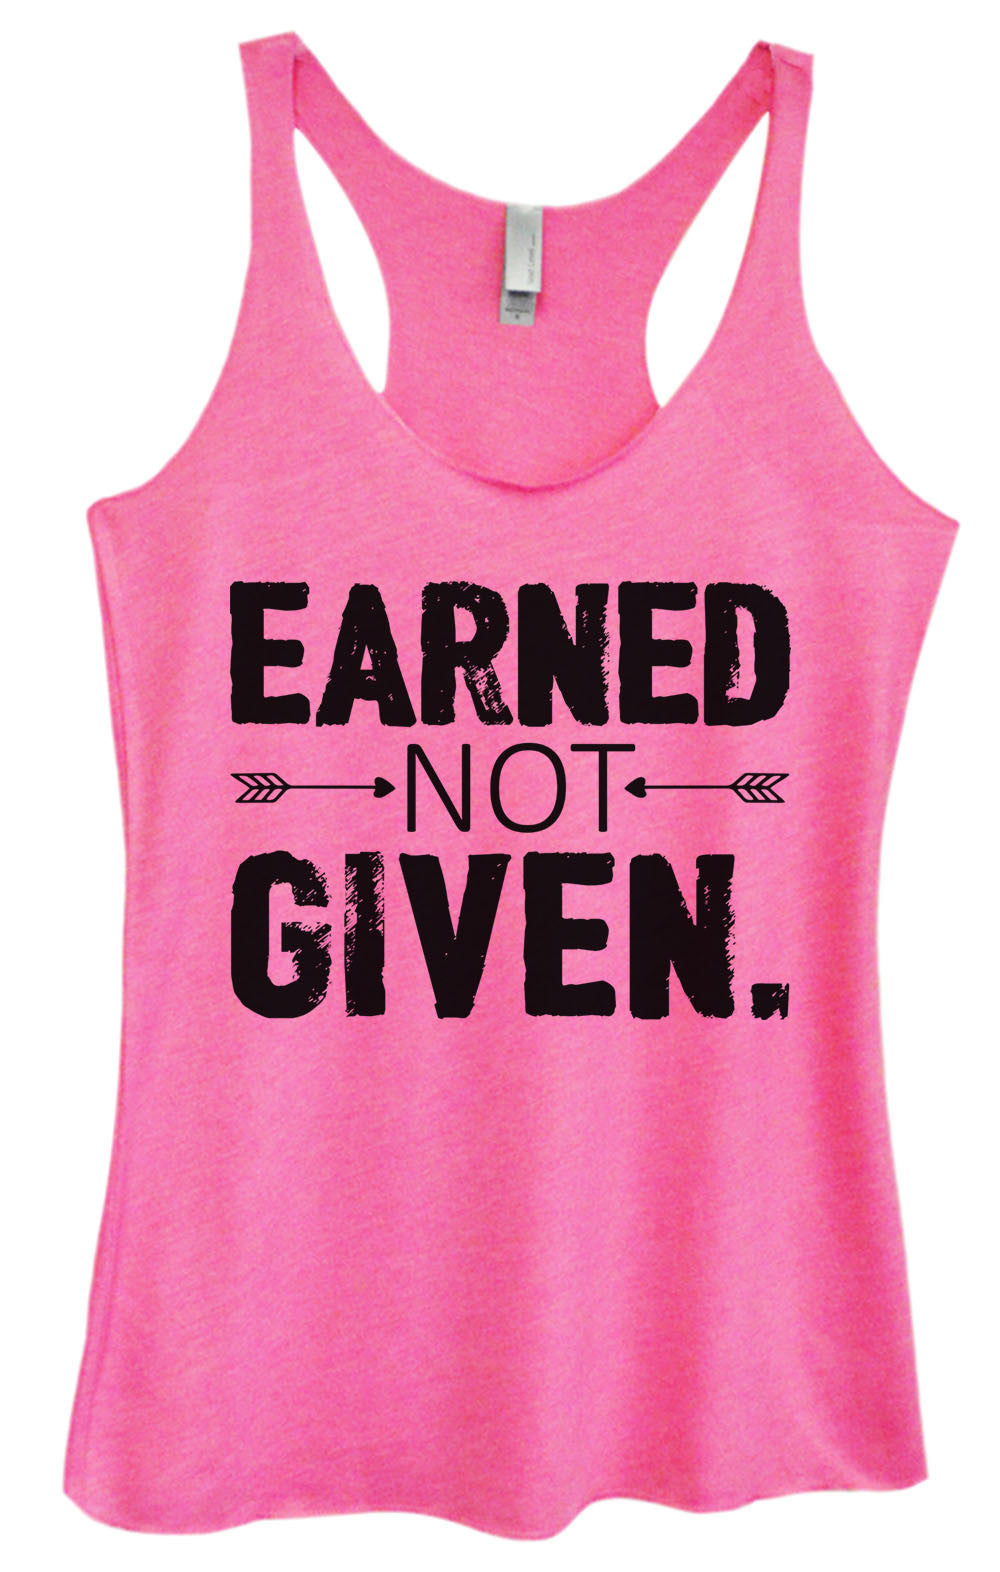 Womens Fashion Triblend Tank Top - Earned Not Given - Tri-918 - Funny Shirts Tank Tops Burnouts and Triblends  - 4